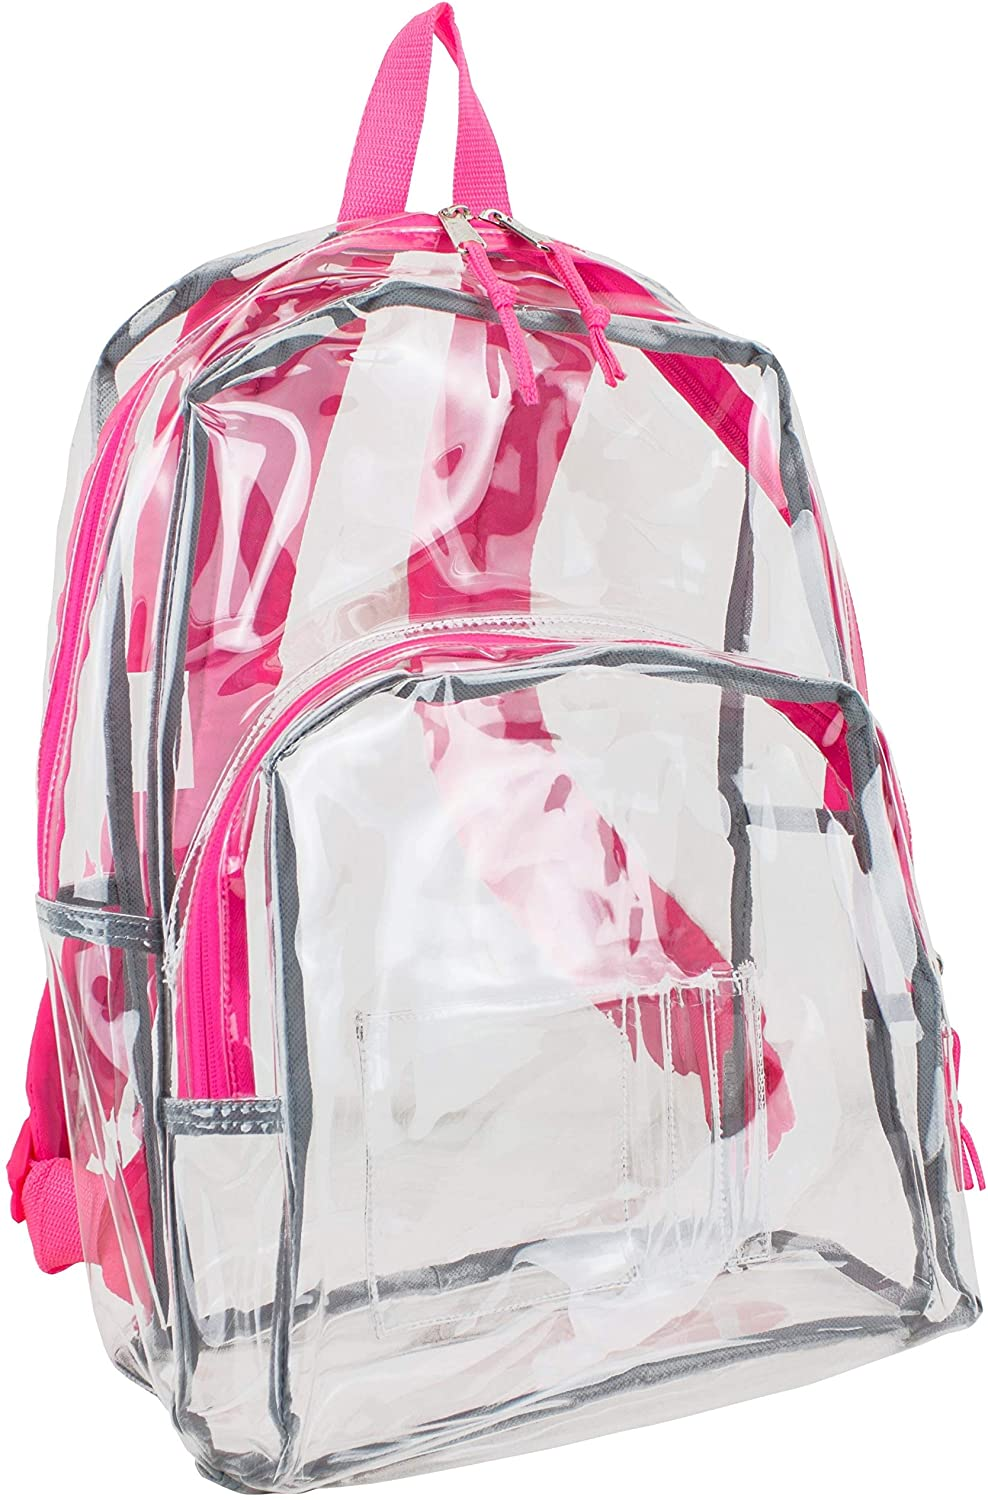 Clear Backpack Fully Transparent Padded Straps Pink Solid Plastic Compartment